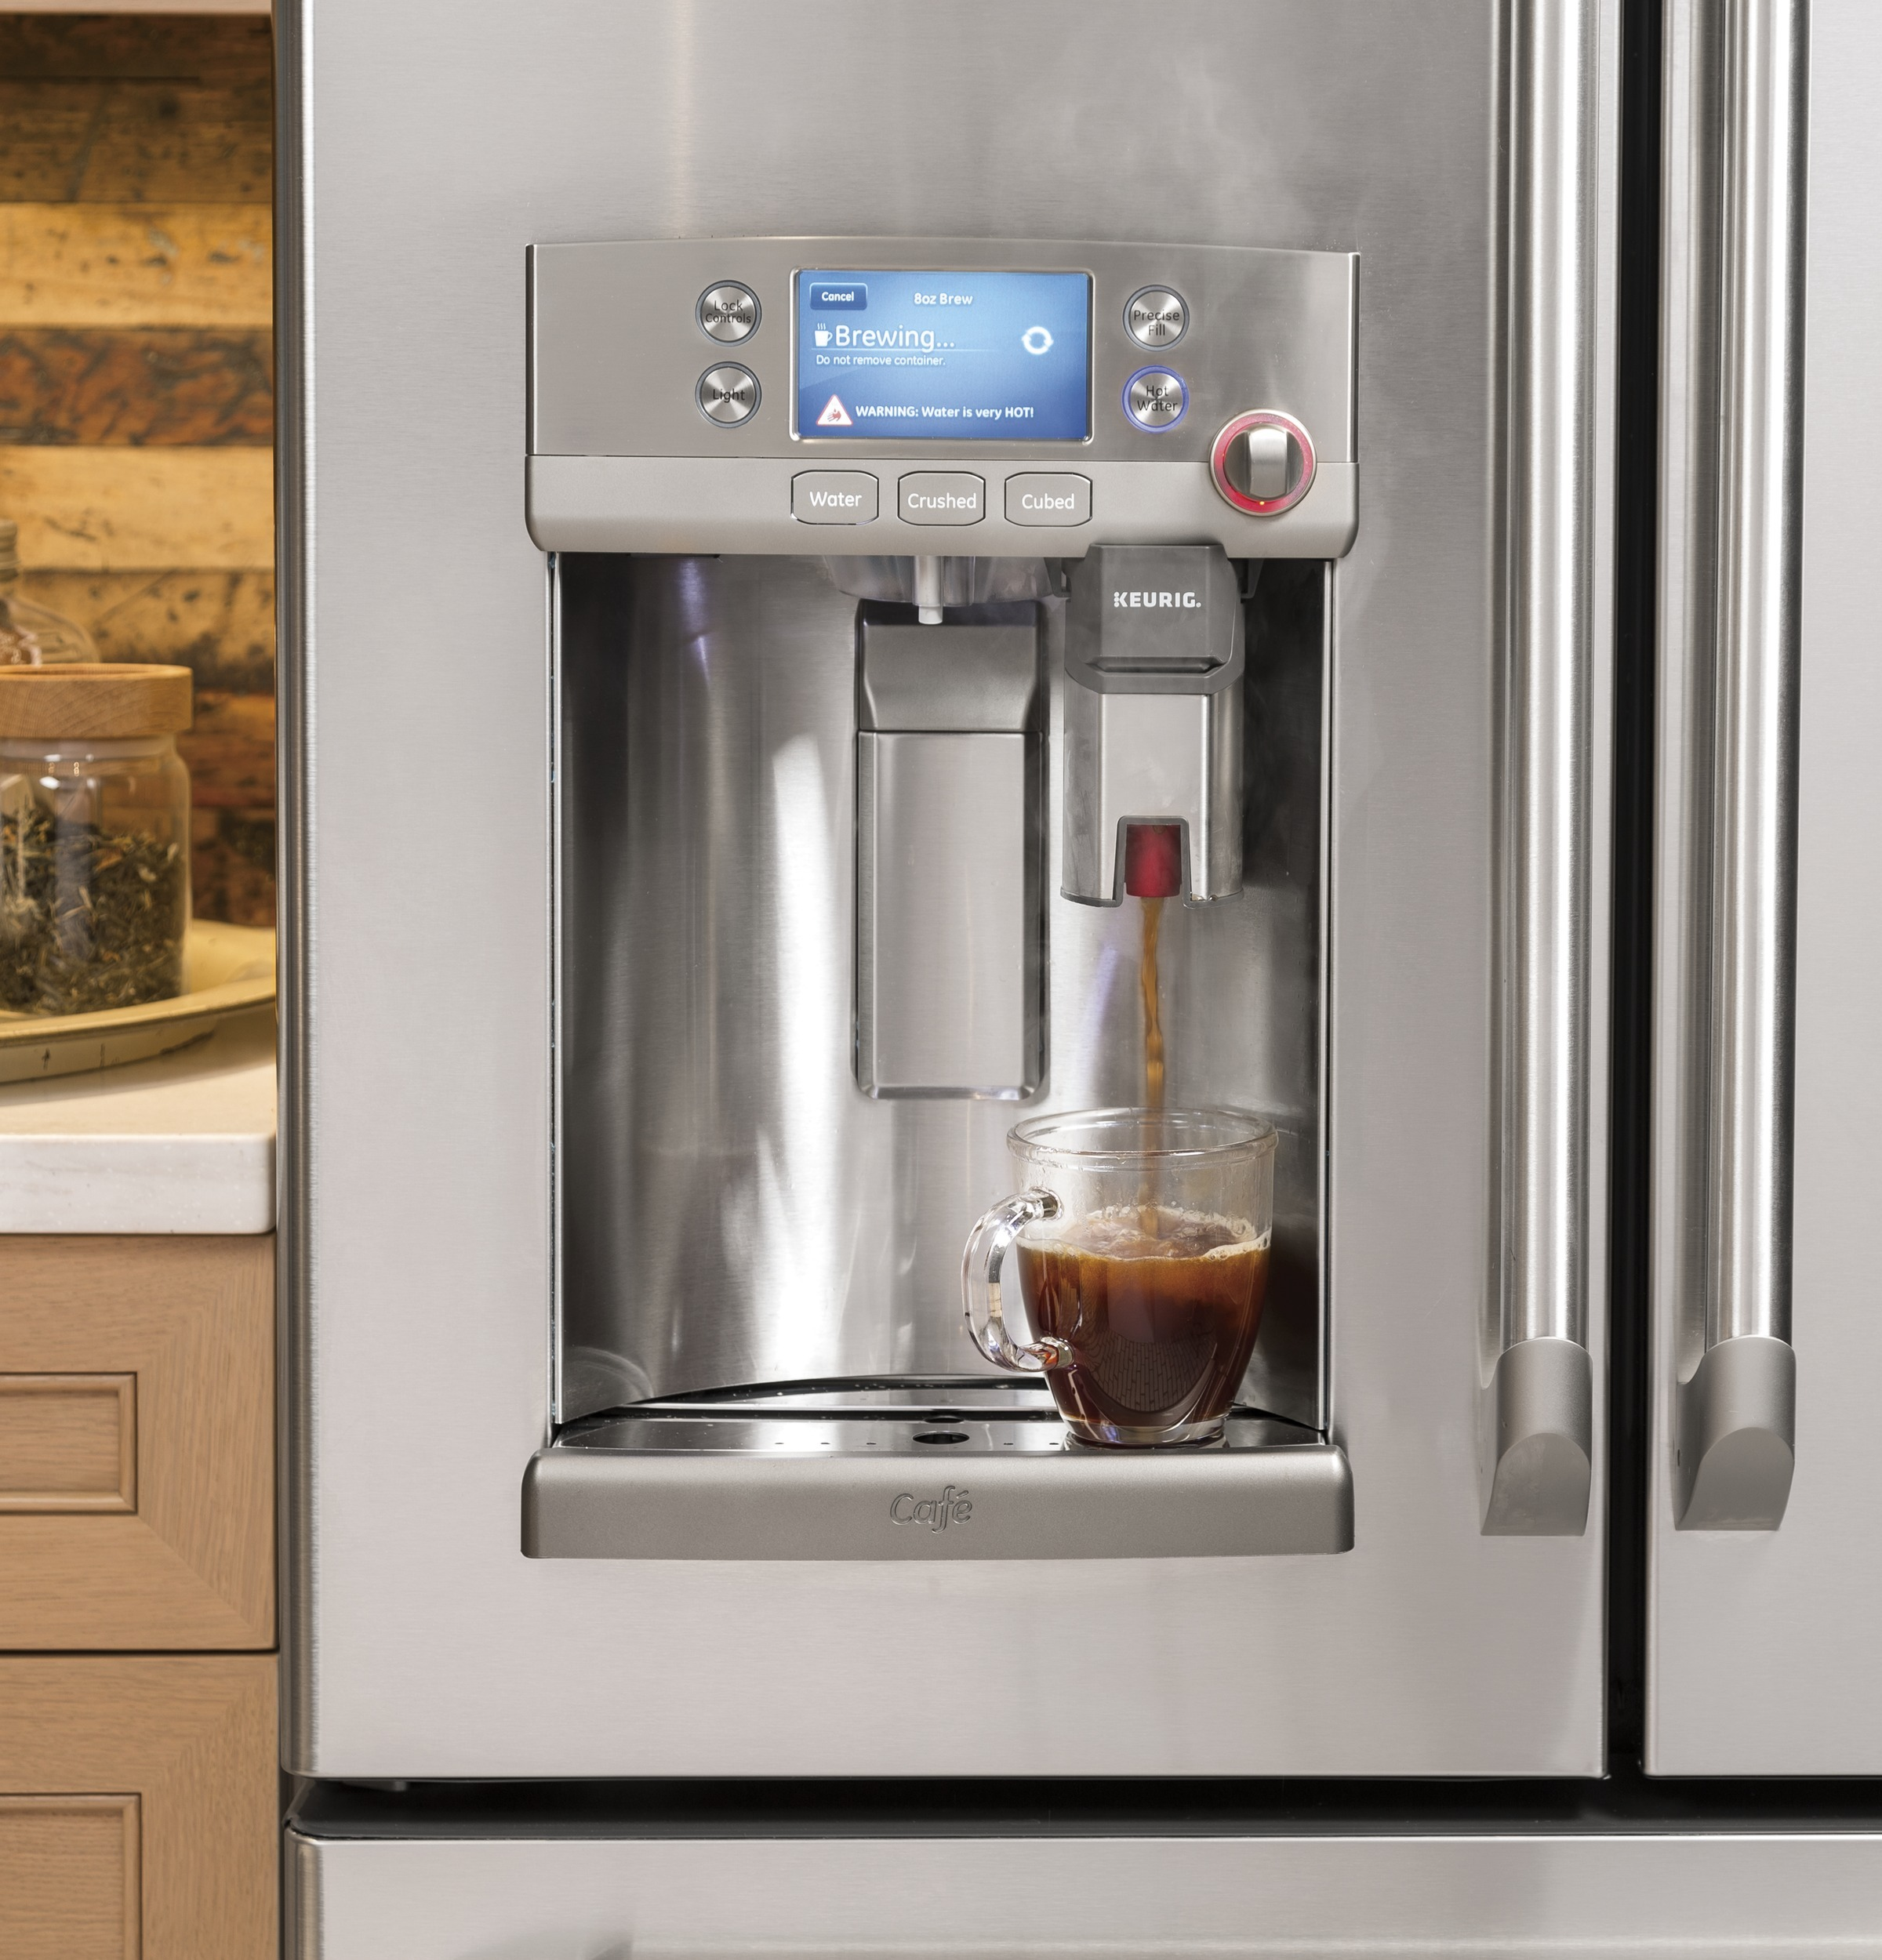 GE Cafe Series Refrigerator with Keurig KCup Brewing System Now